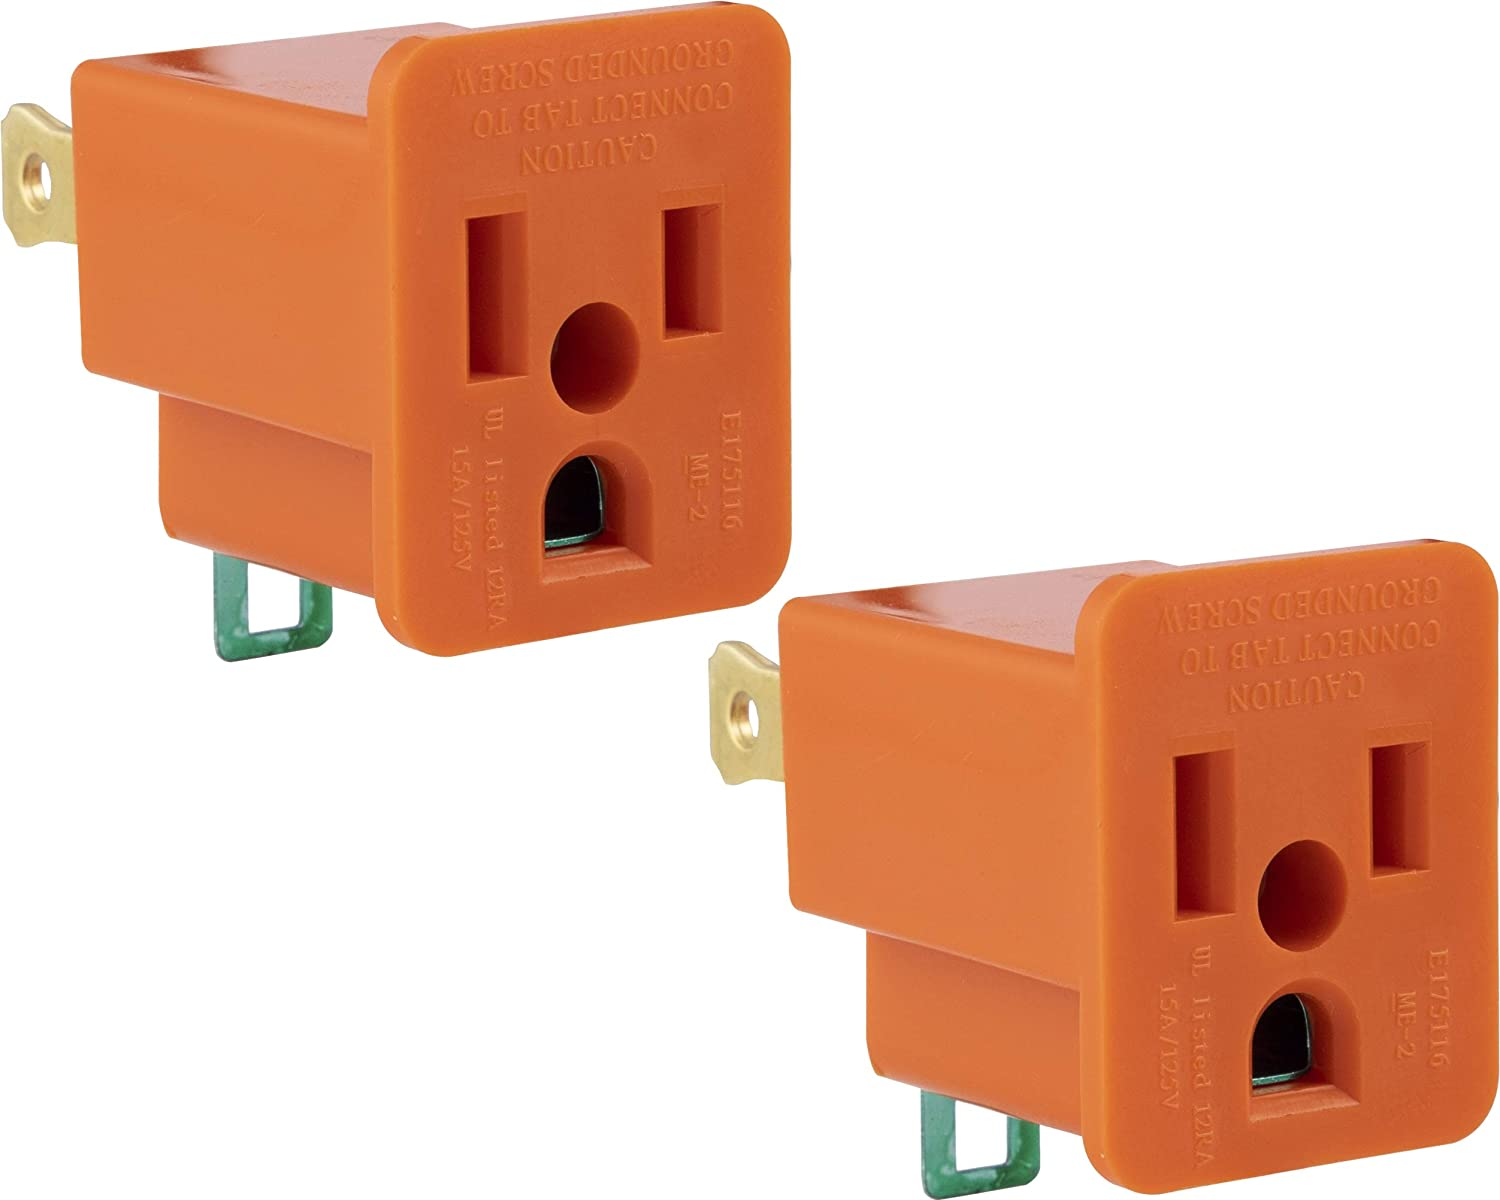 Ge Polarized Grounding 2 Pack Turn 2 3 Prong Easy To Install Indoor Only Ul Listed Orange 14404 Outlet Adapter Plug Adapters Amazon Com